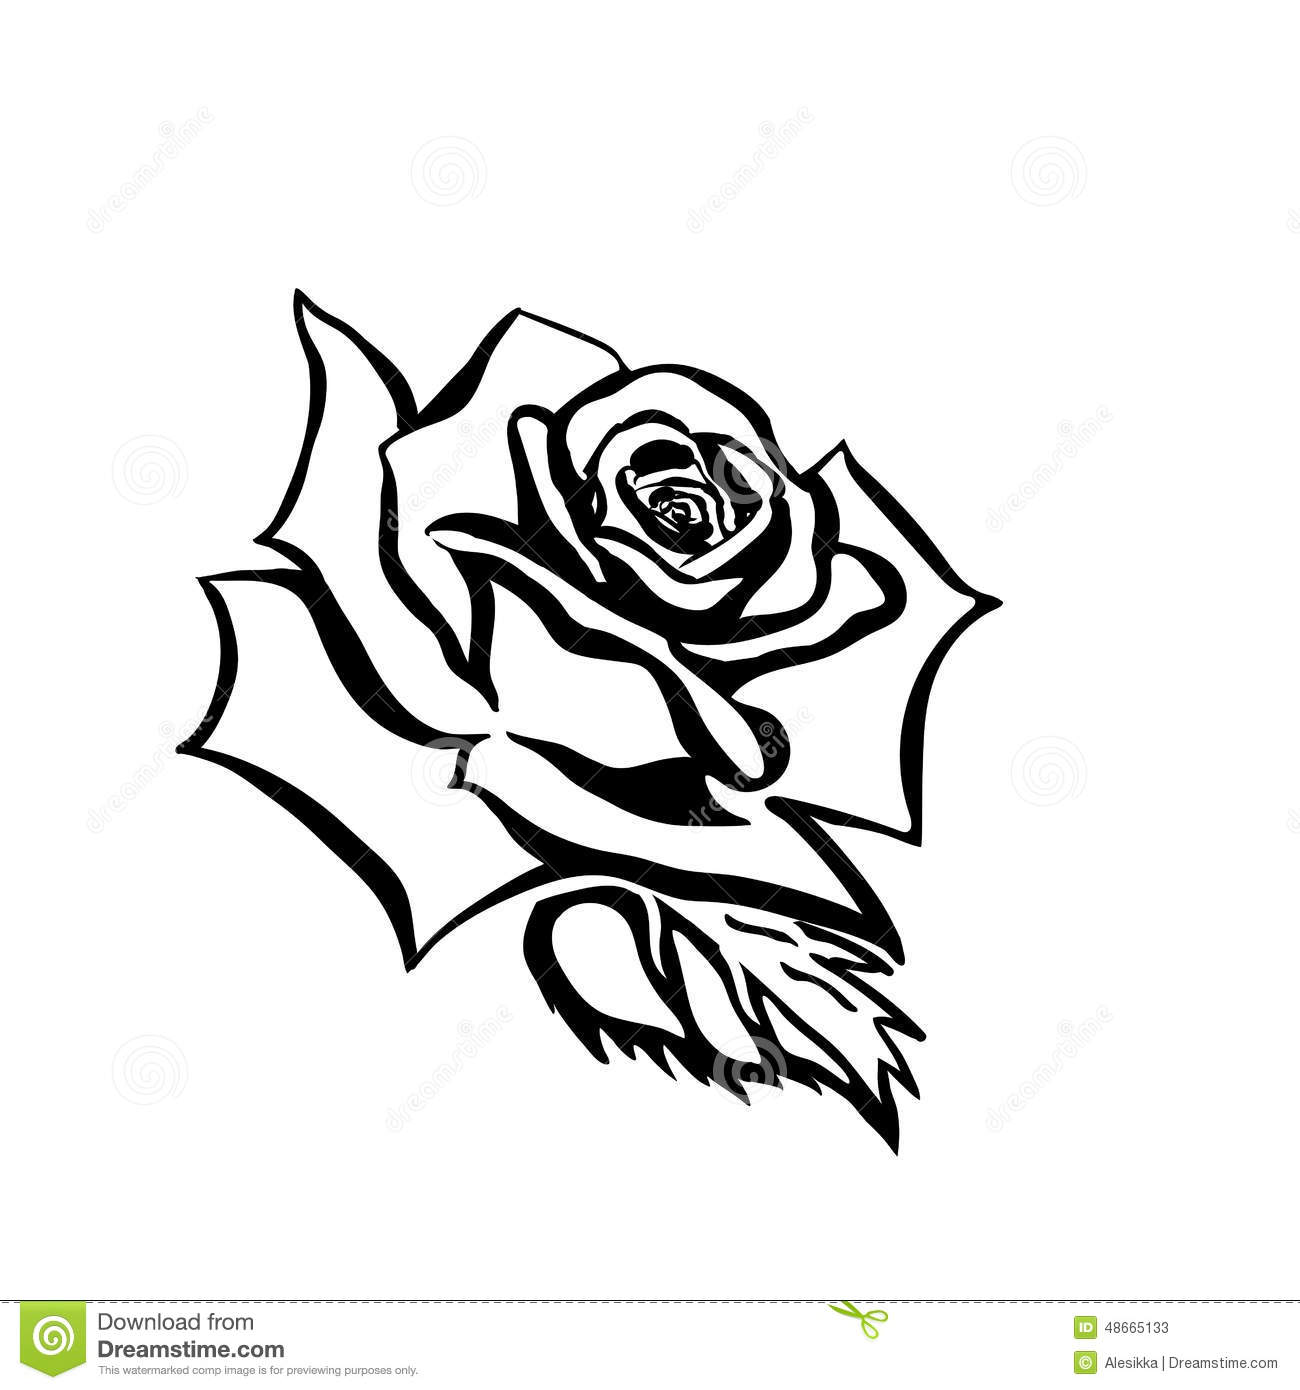 how to turn roses black